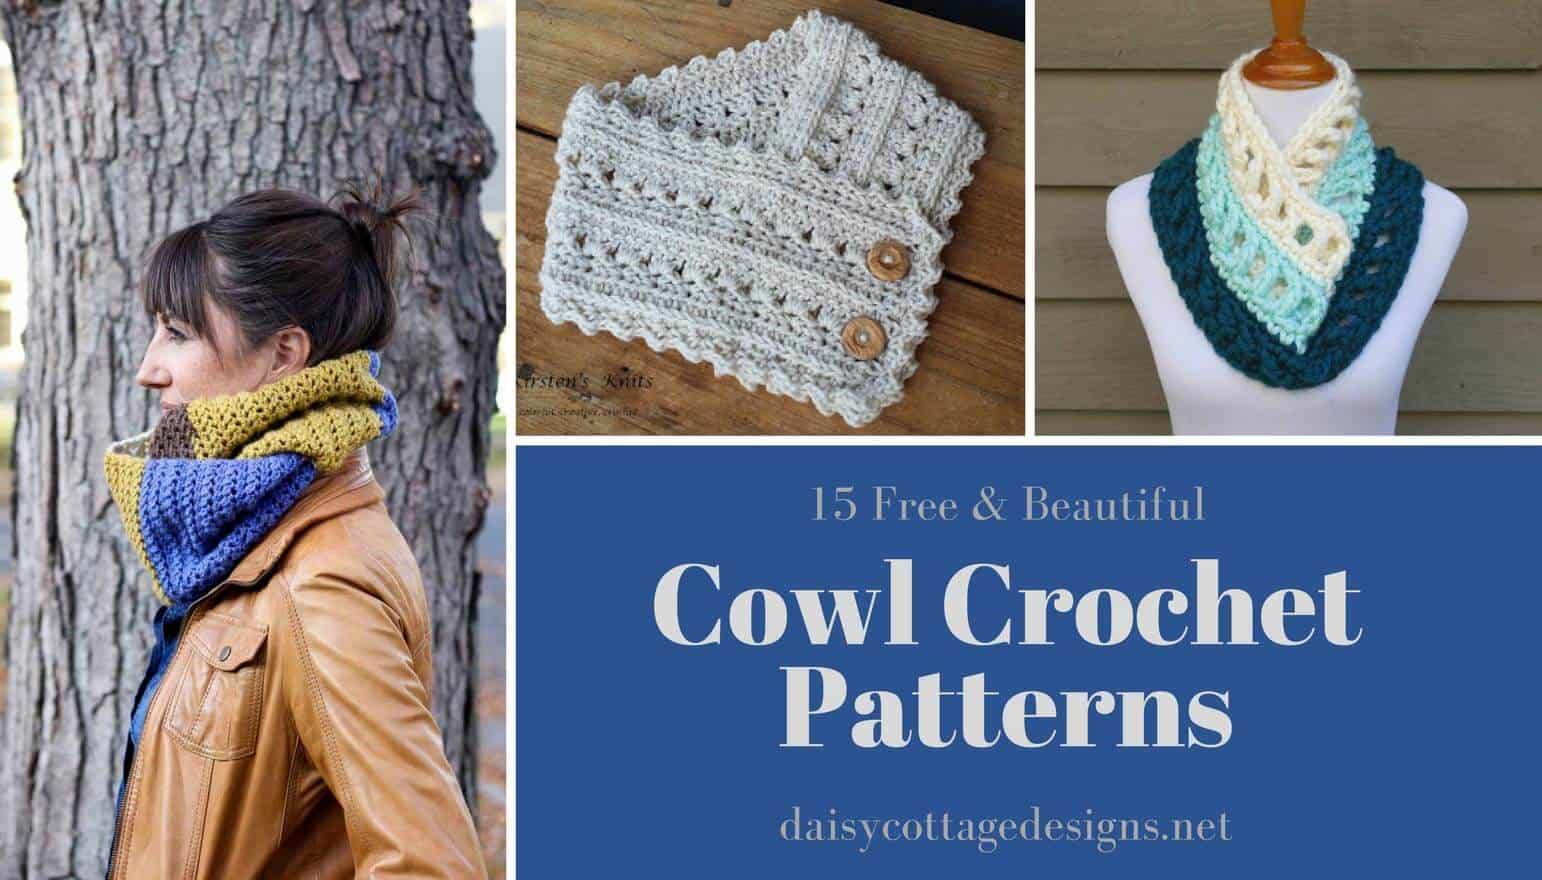 15 free cowl crochet patterns. These make wonderful gifts and fashion statements.